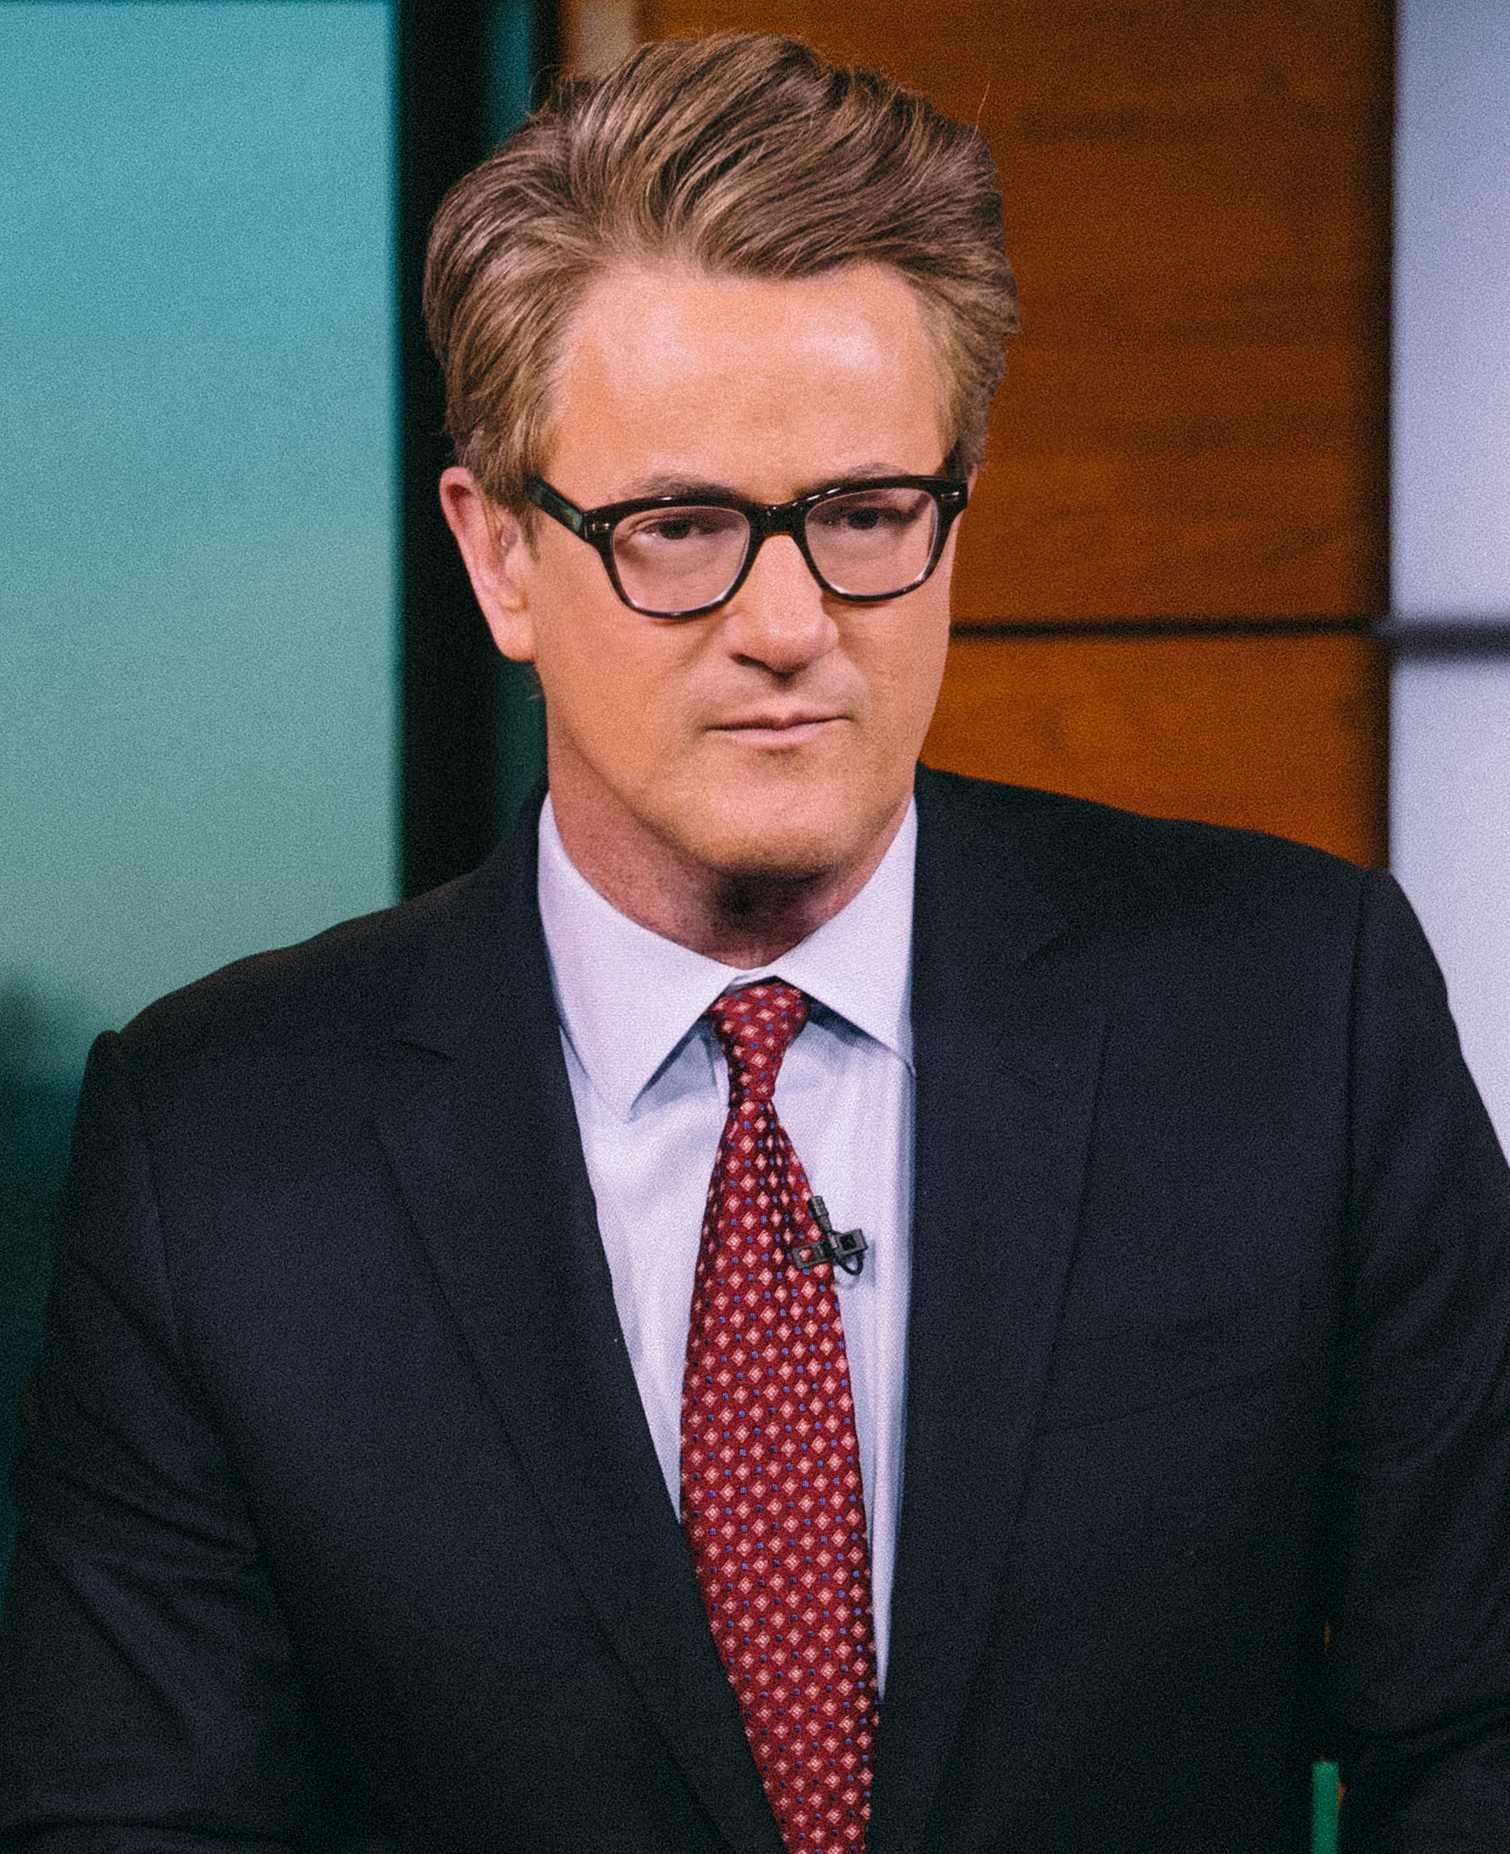 Joe Scarborough - Wikipedia